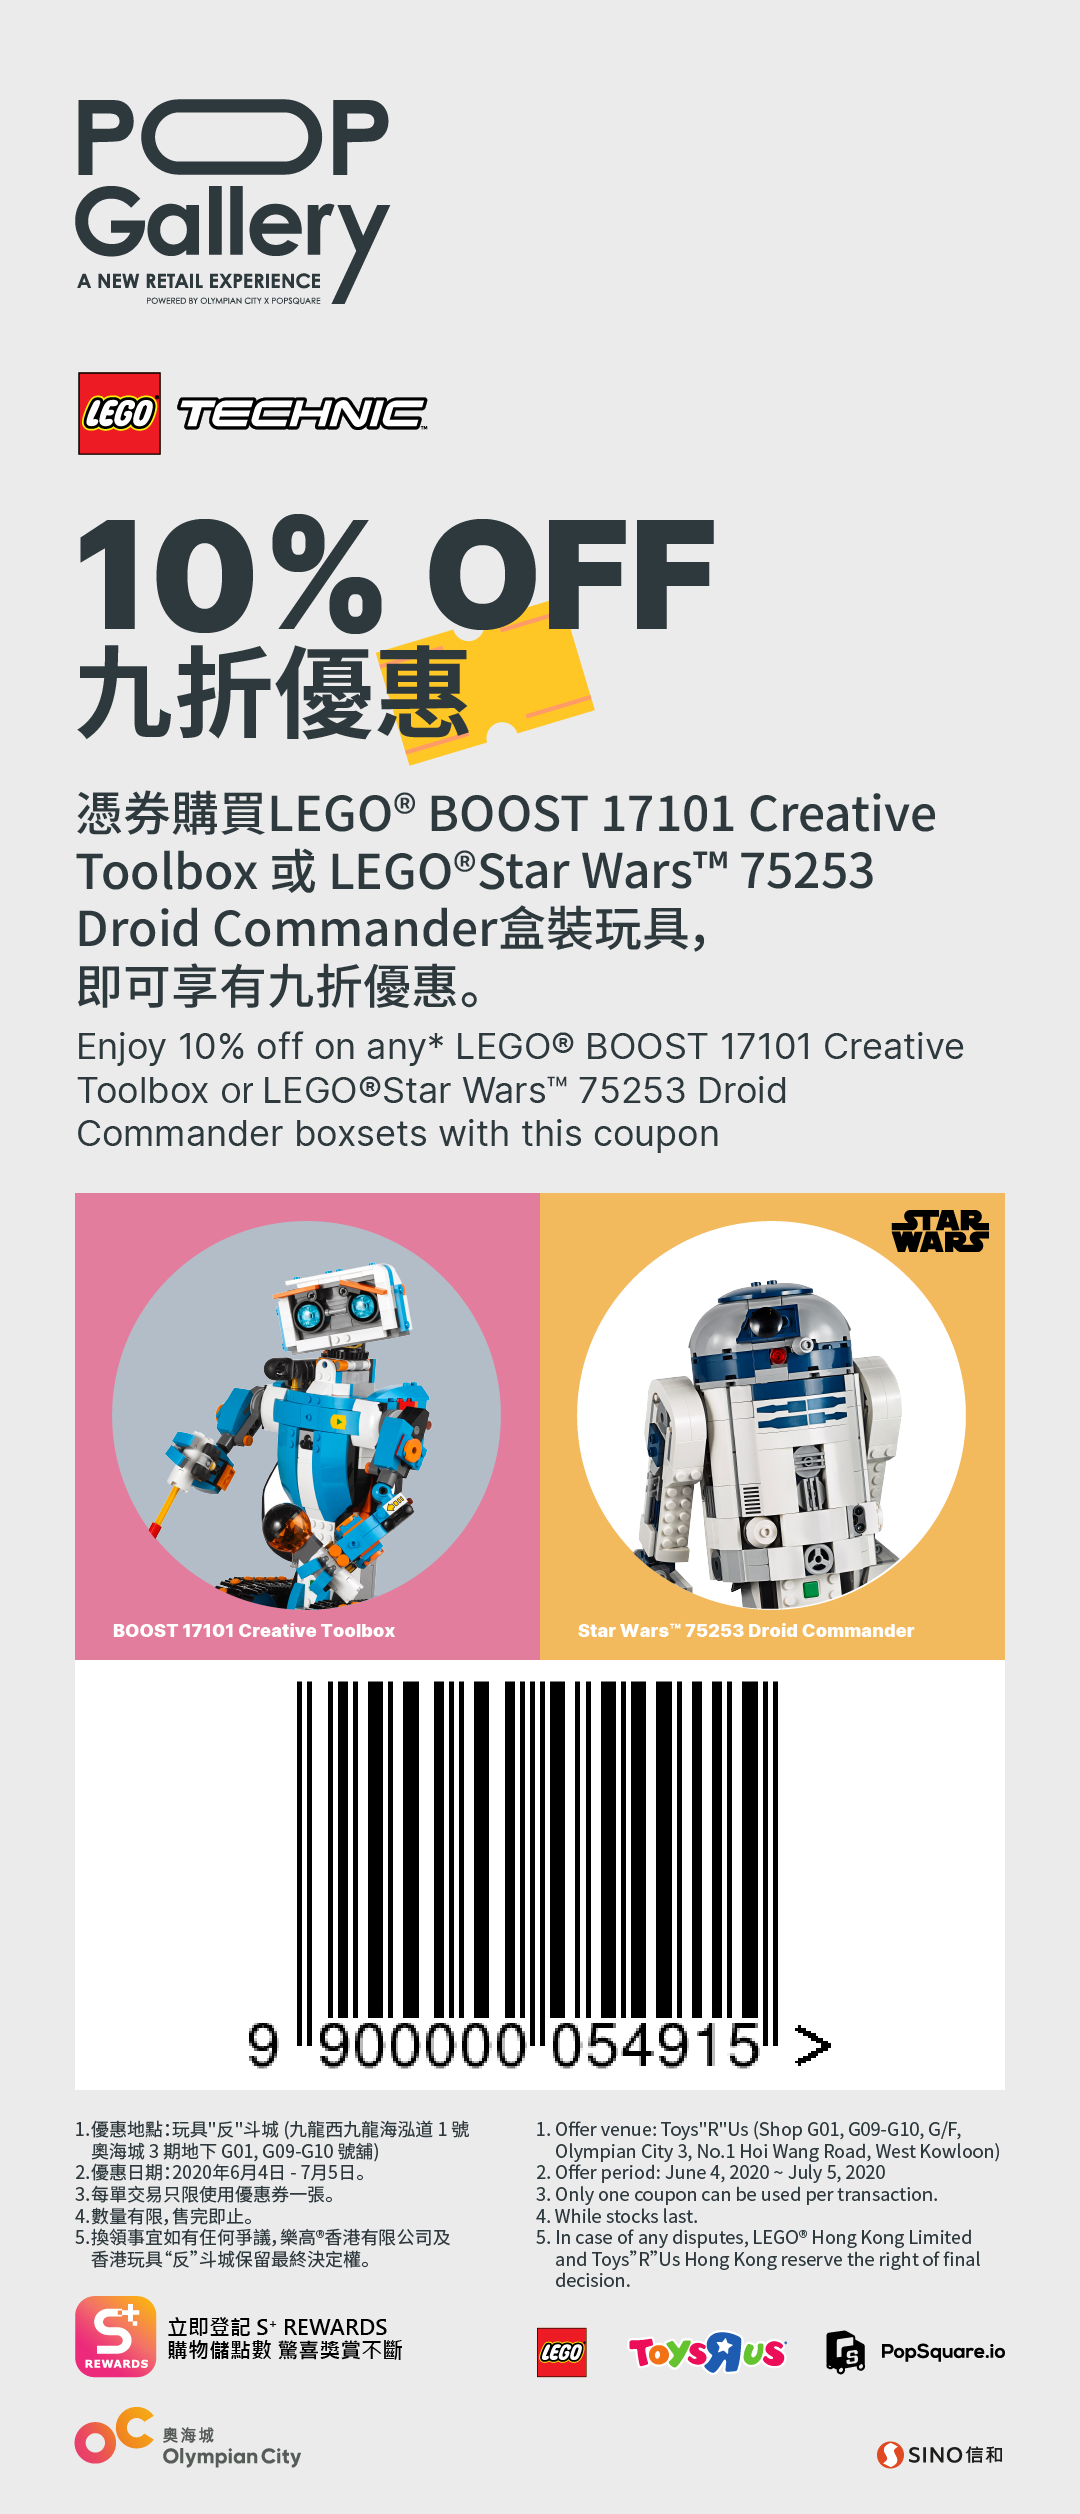 10% OFF coupon for LEGO®️ BOOST 17101 Creative Toolbox or LEGO®️Star Wars™️ 75253 Droid Commander boxset